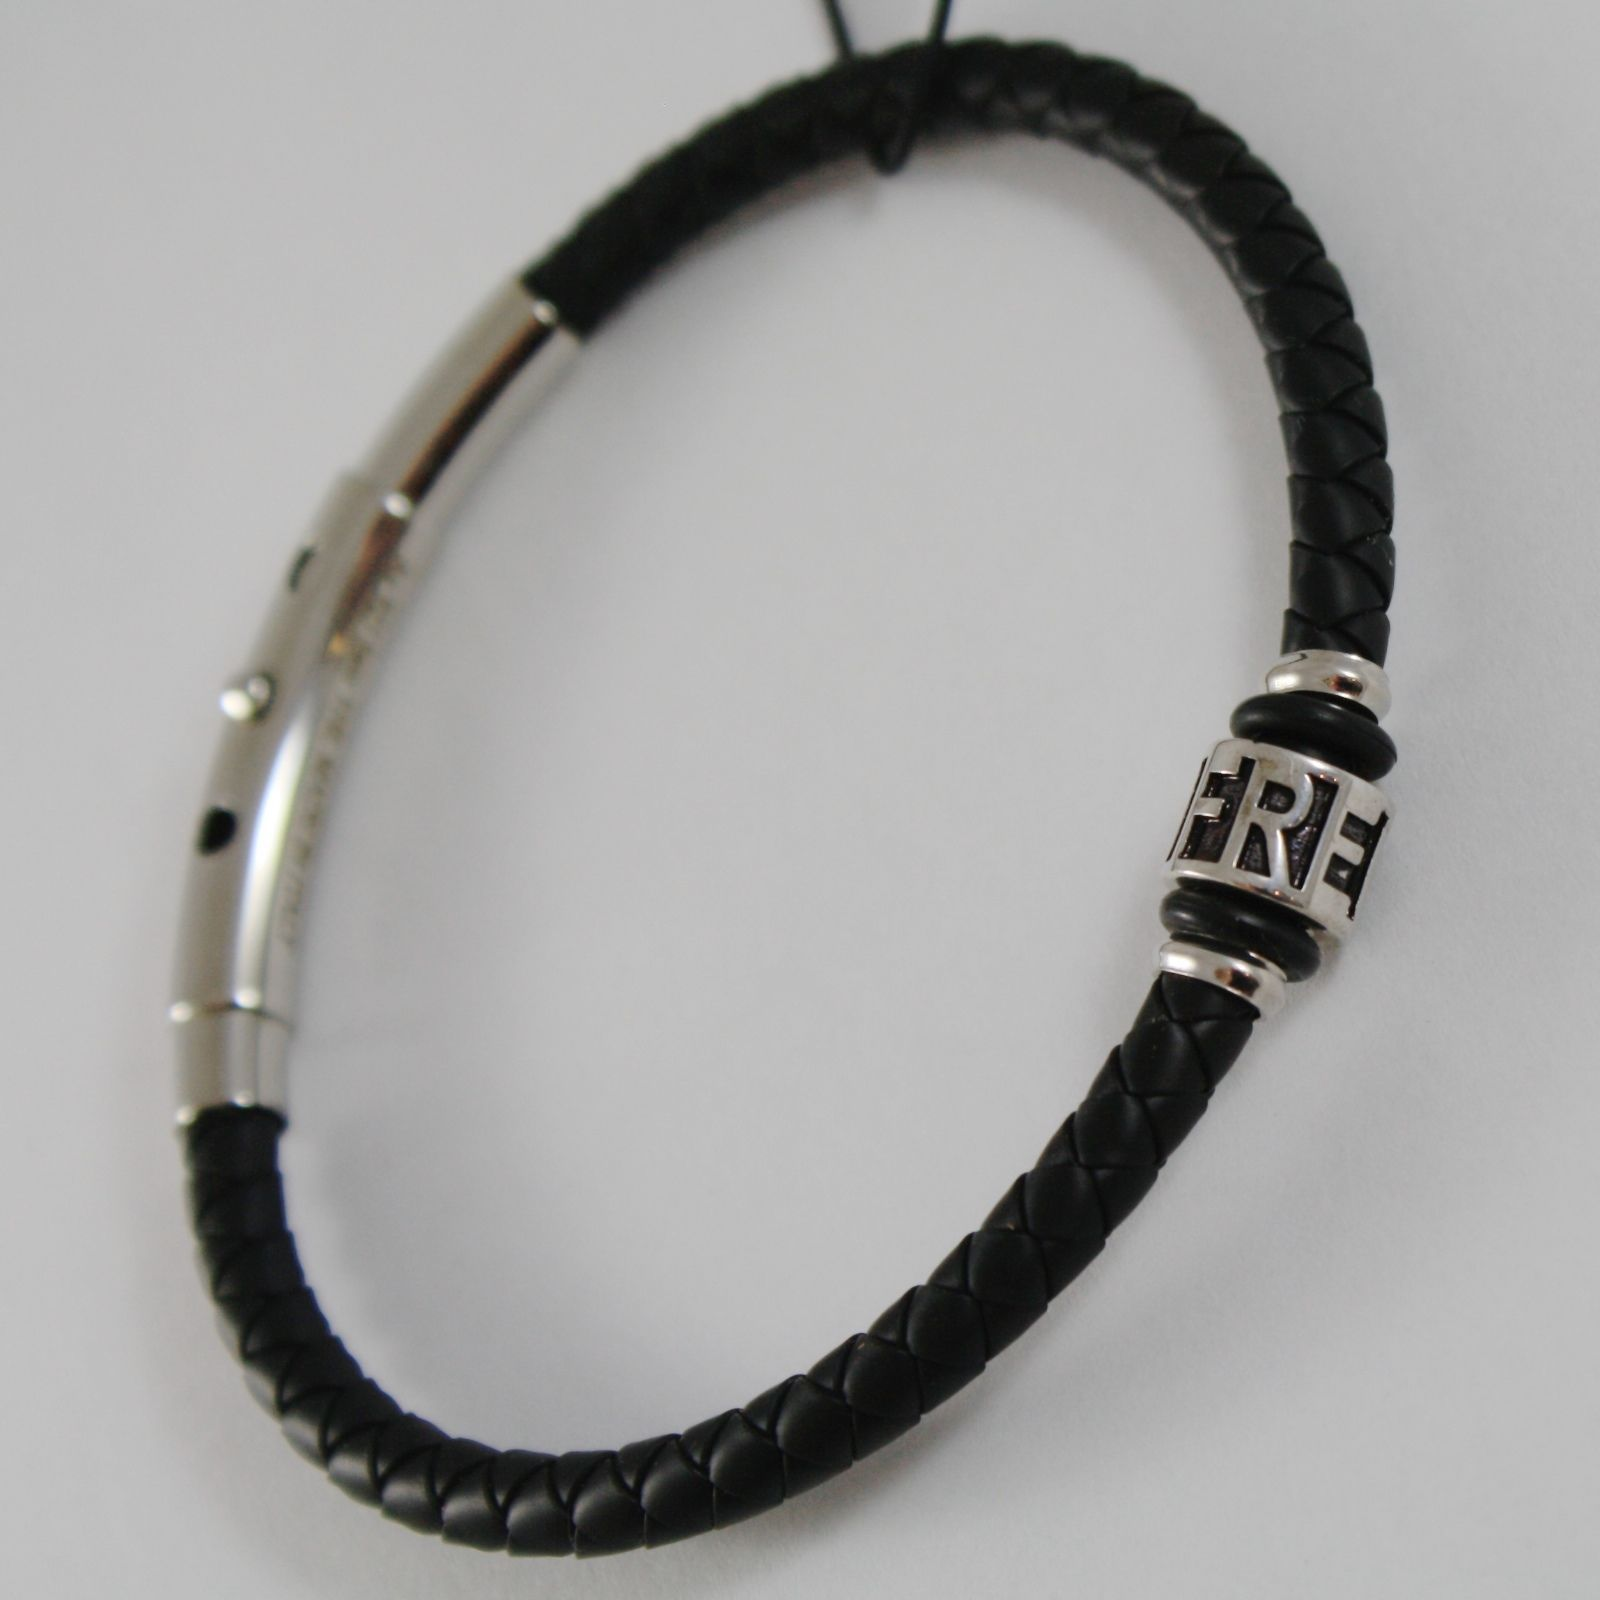 925 SILVER ZANCAN BRACELET BLACK WOVEN LEATHER, FREEDOM CYLINDER, MADE IN ITALY